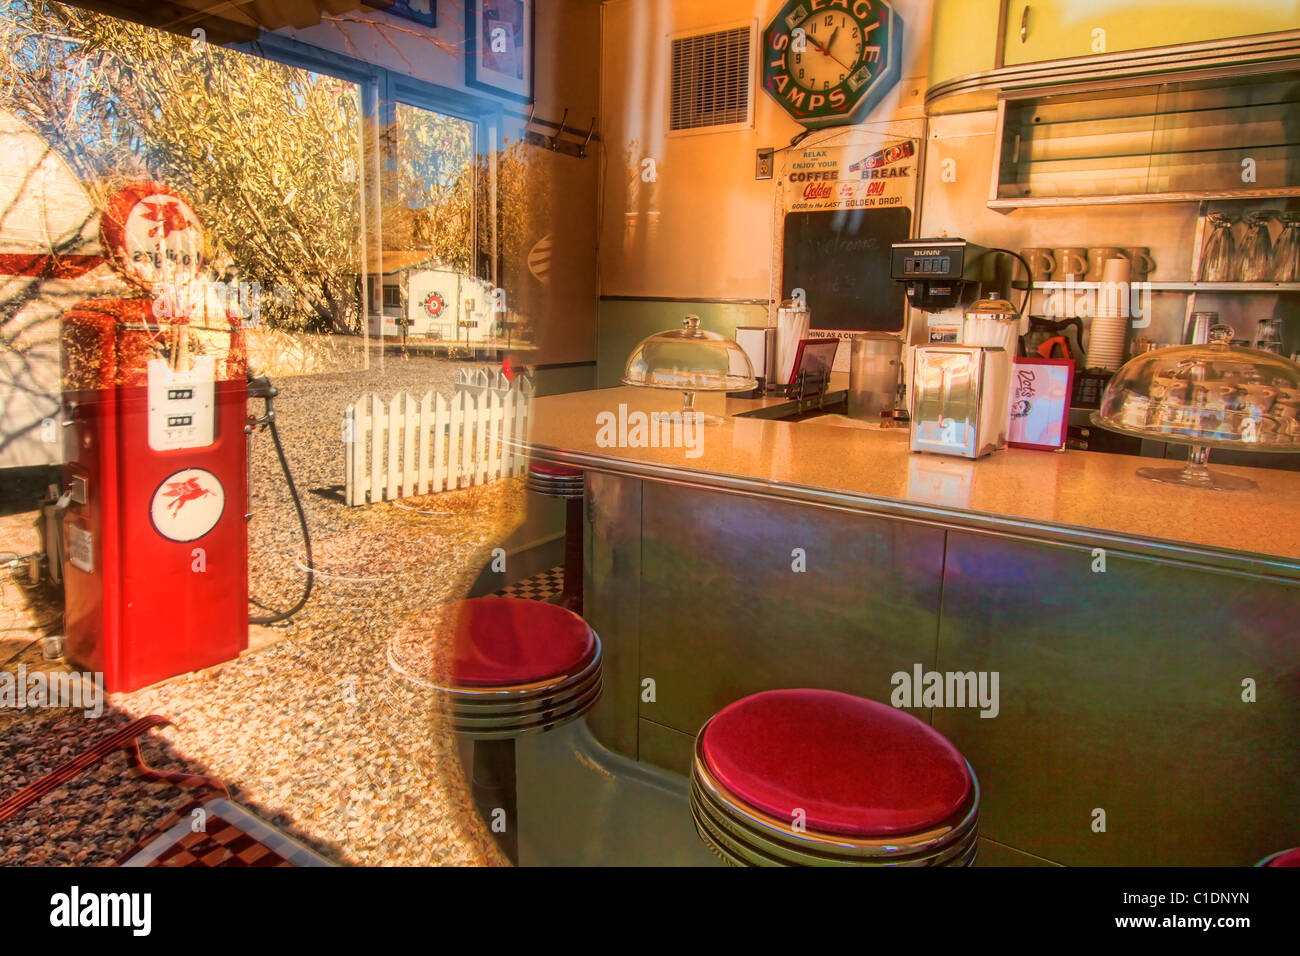 Old diner interior with exterior reflection - Stock Image